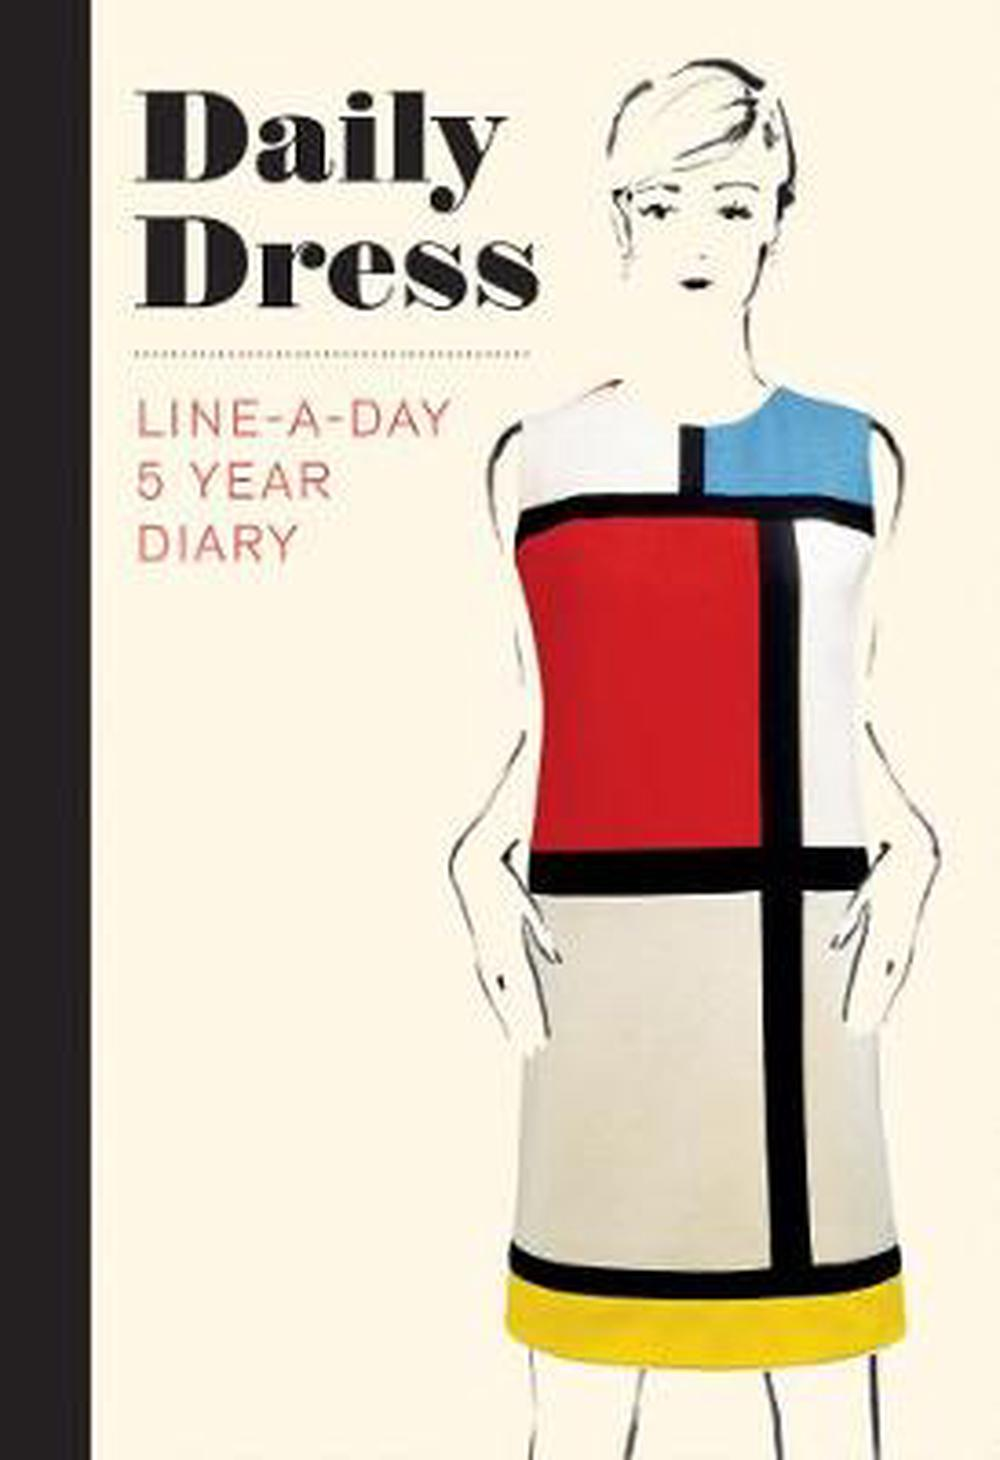 Daily Dress (Guided Journal): A Line-A-Day 5 Year Diary (Diaries) by The Metropolitan Museum of Art, ISBN: 9781419726781